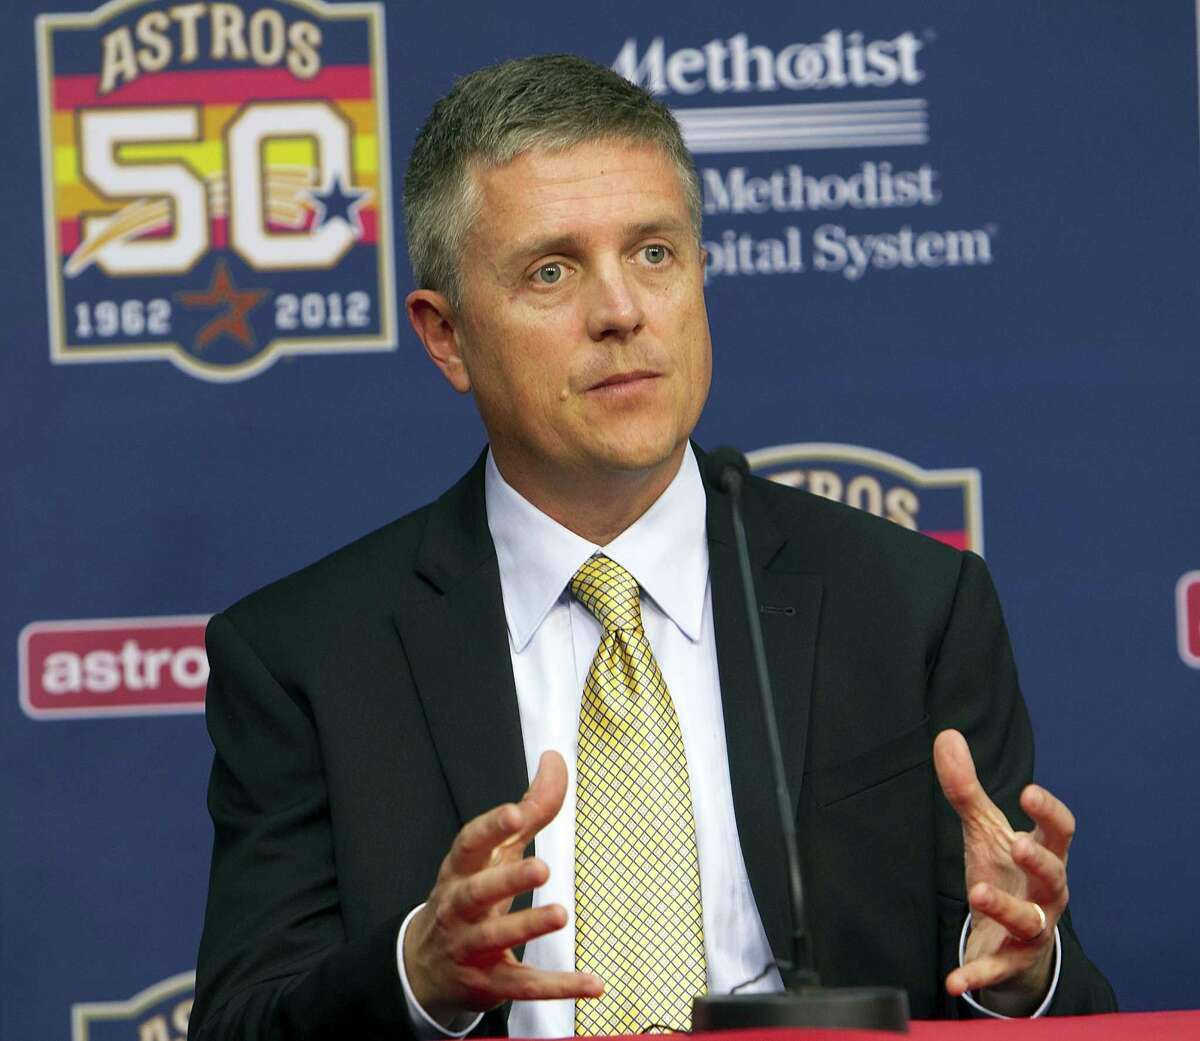 HOUSTON, TX - JUNE 18: Houston Astros general manager Jeff Luhnow answers questions during a press conference to introduce right-handed pitcher Lance McCullers, who was selected in the compensation first round (41st overall) of the 2012 MLB First Year Player Draft at Minute Maid Park on June 18, 2012 in Houston, Texas. (Photo by Bob Levey/Getty Images)